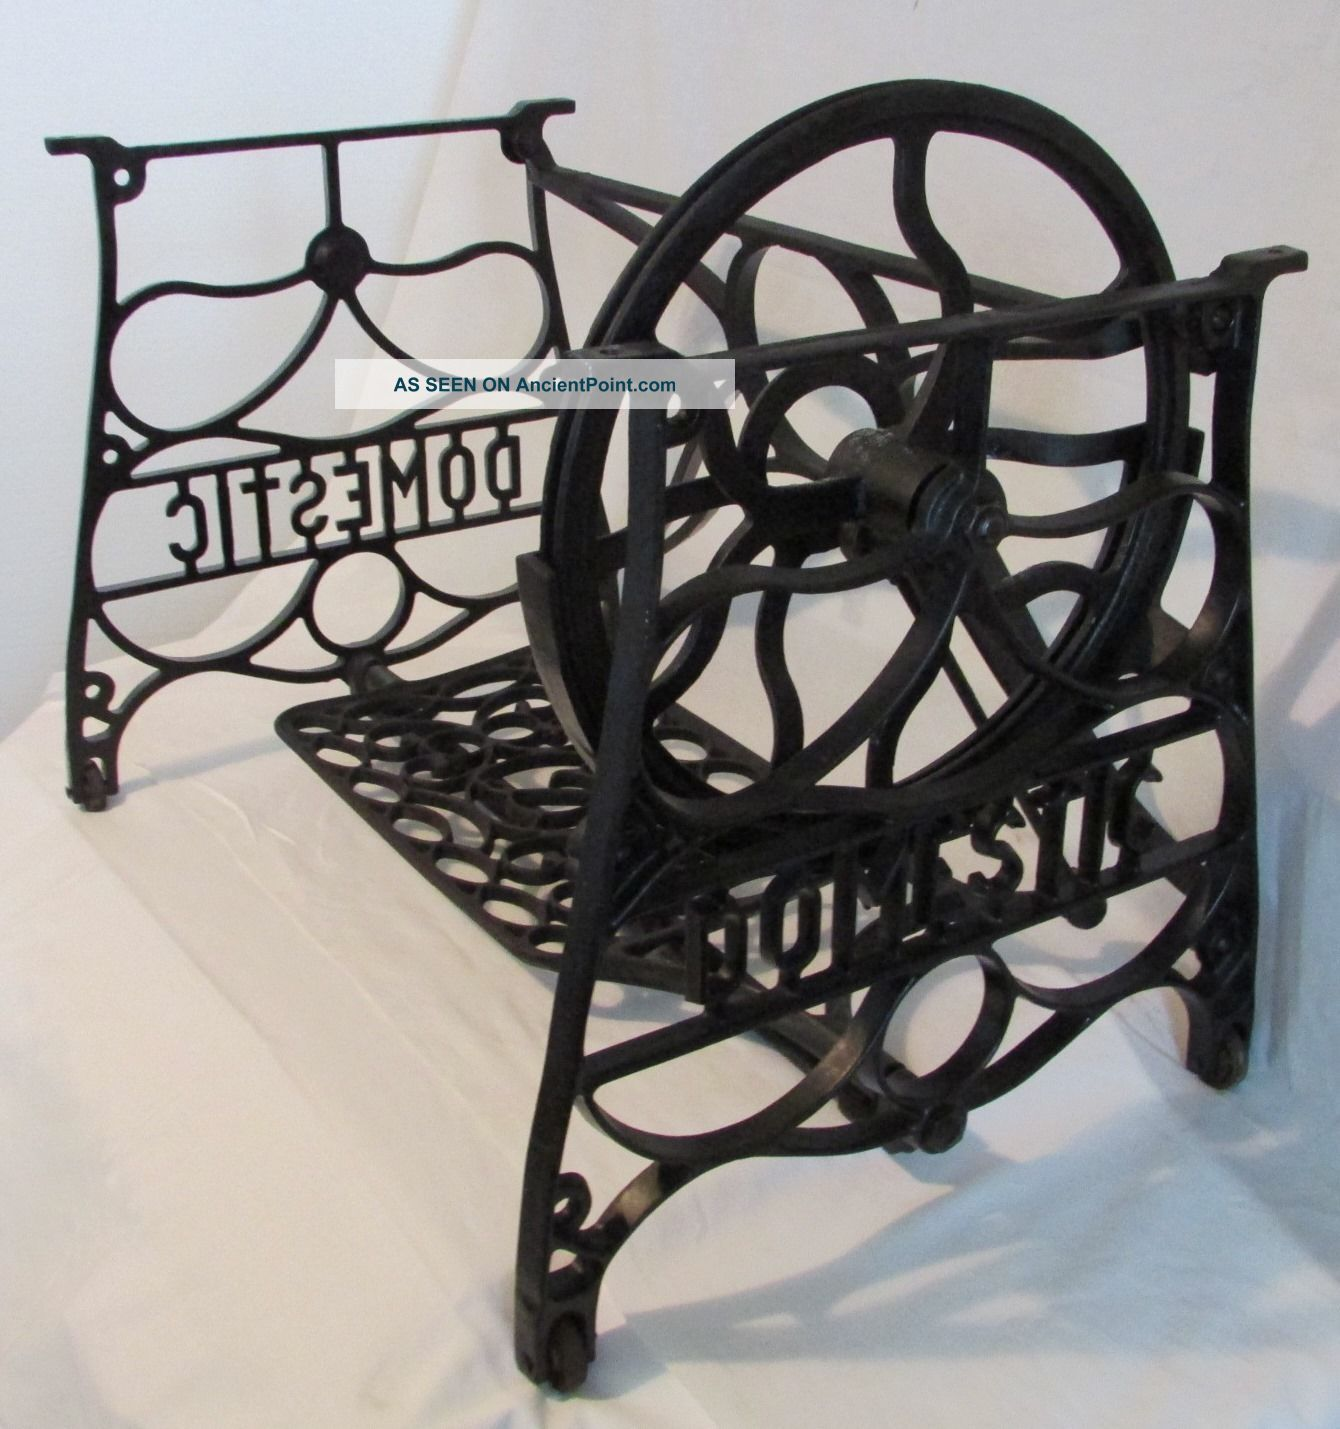 1898 Domestic Treadle Sewing Machine Frame Table Cast Iron Short Base Industrial Sewing Machines photo